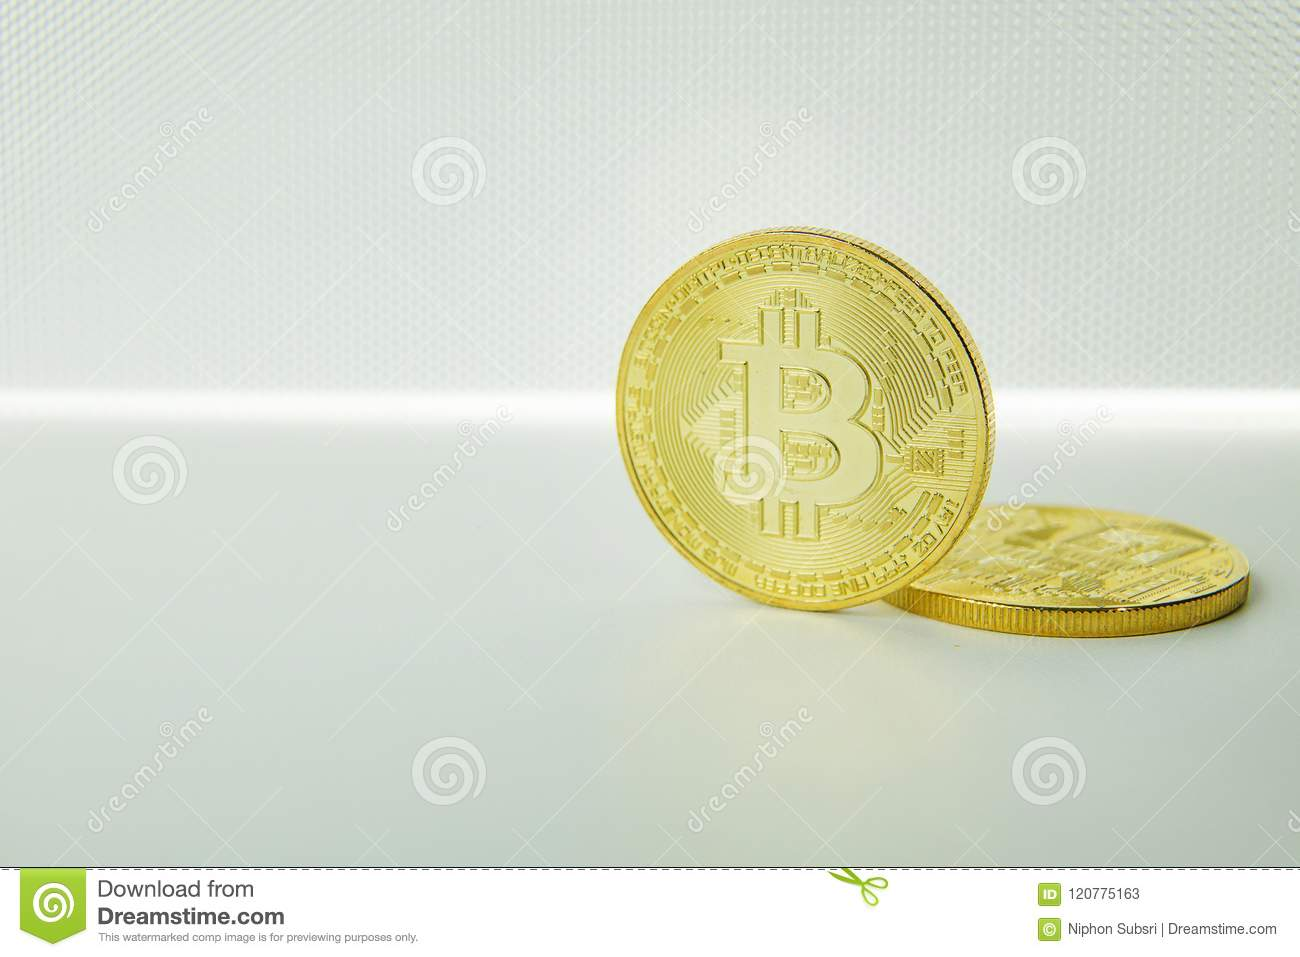 Bitcoin crypto currency electronic money image closeup.